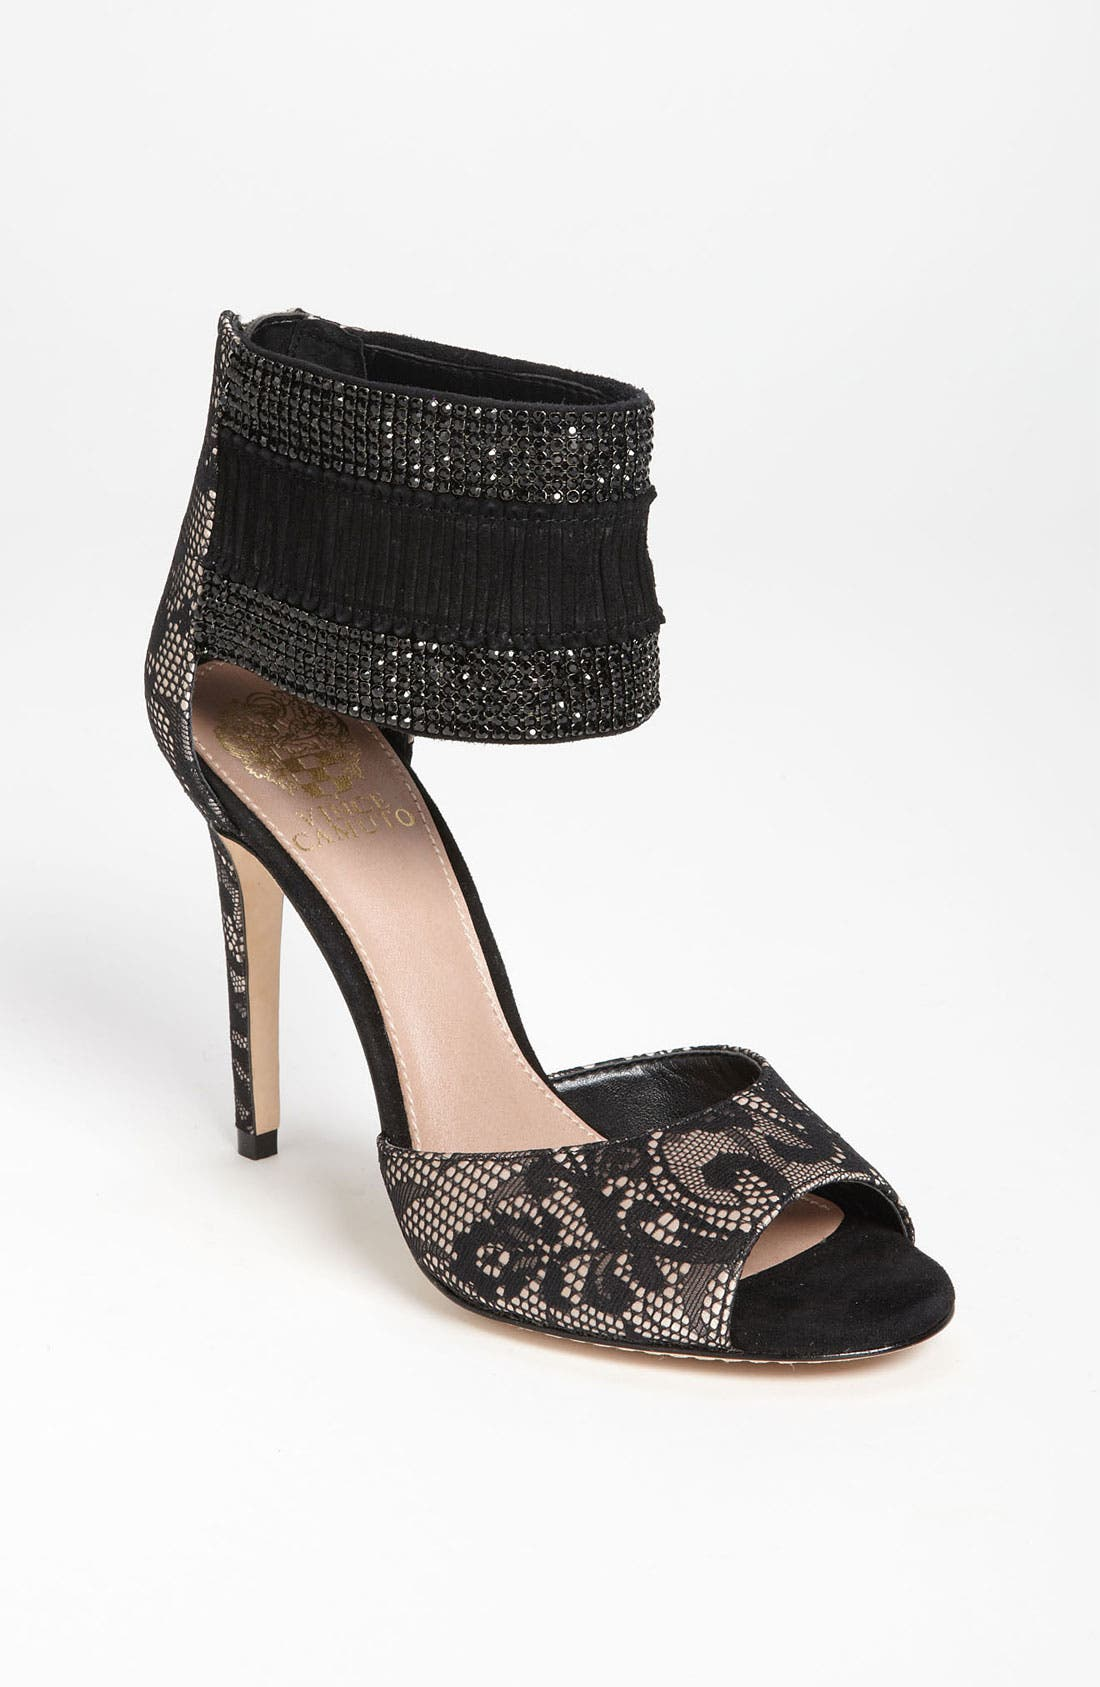 Alternate Image 1 Selected - Vince Camuto 'Lissa' Sandal (Nordstrom Exclusive)